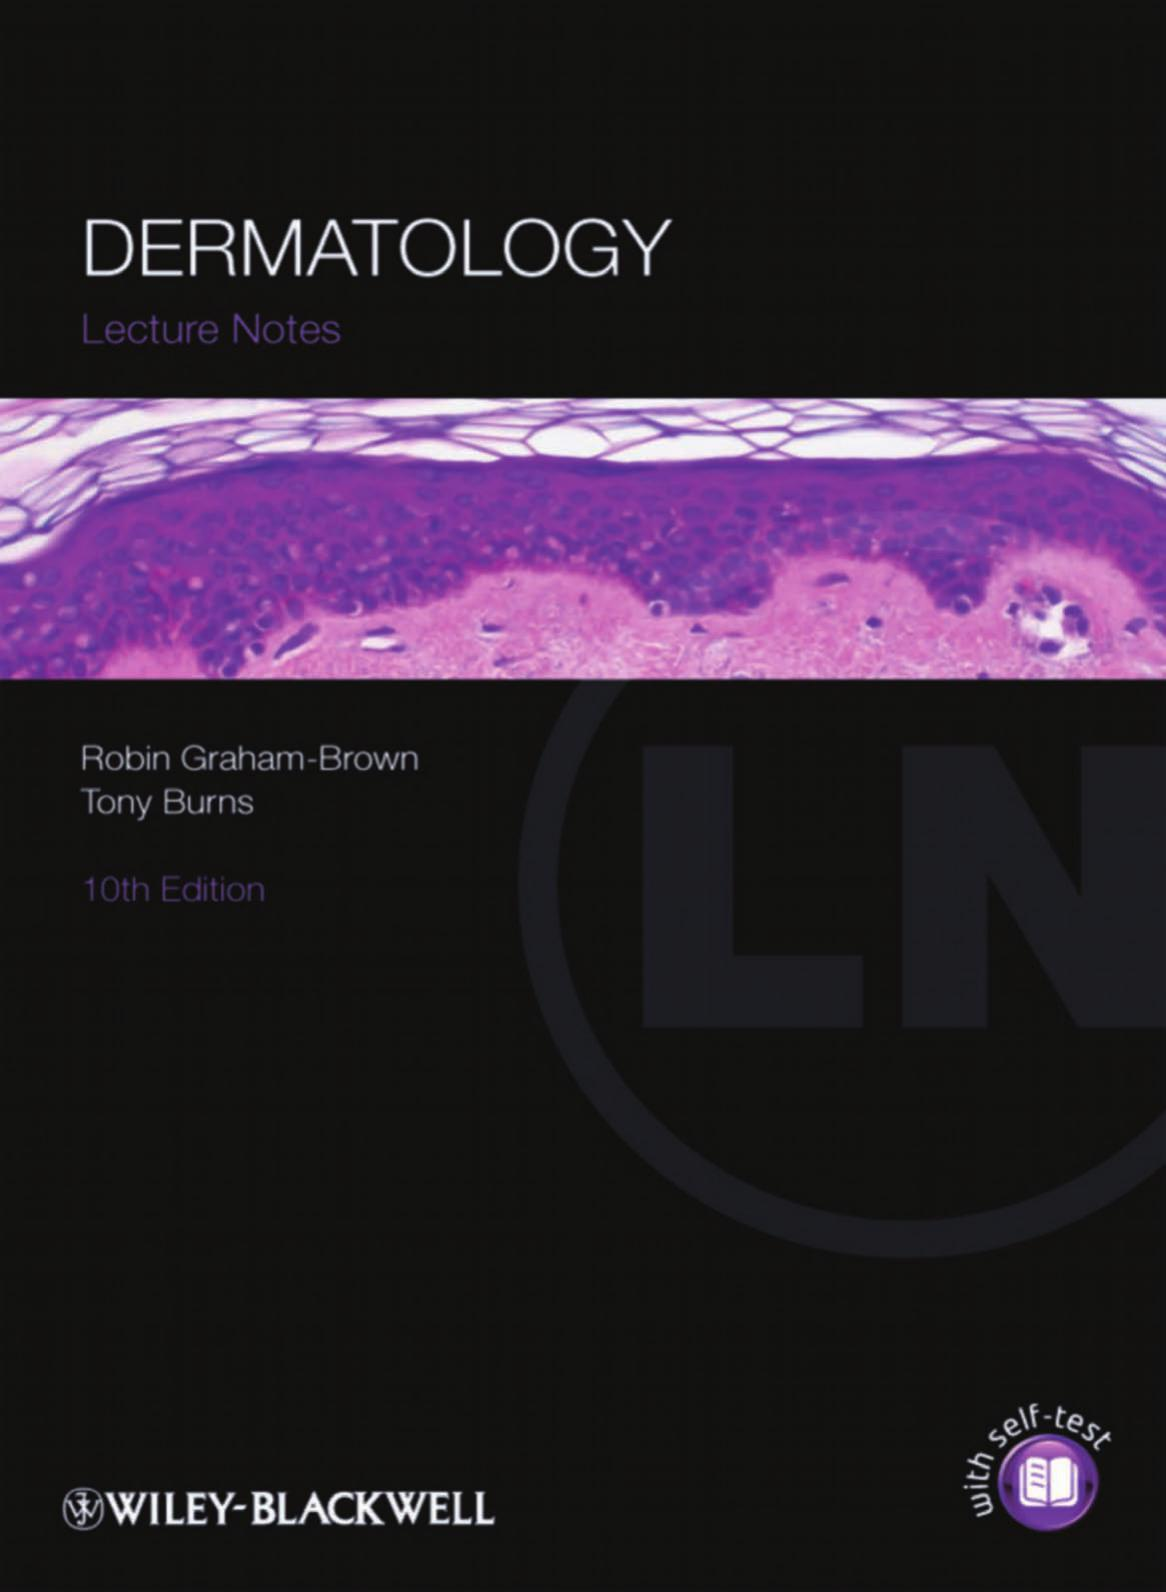 Dermatology Lecture Notes 10th Edition PDF - Wiley-Blackwell